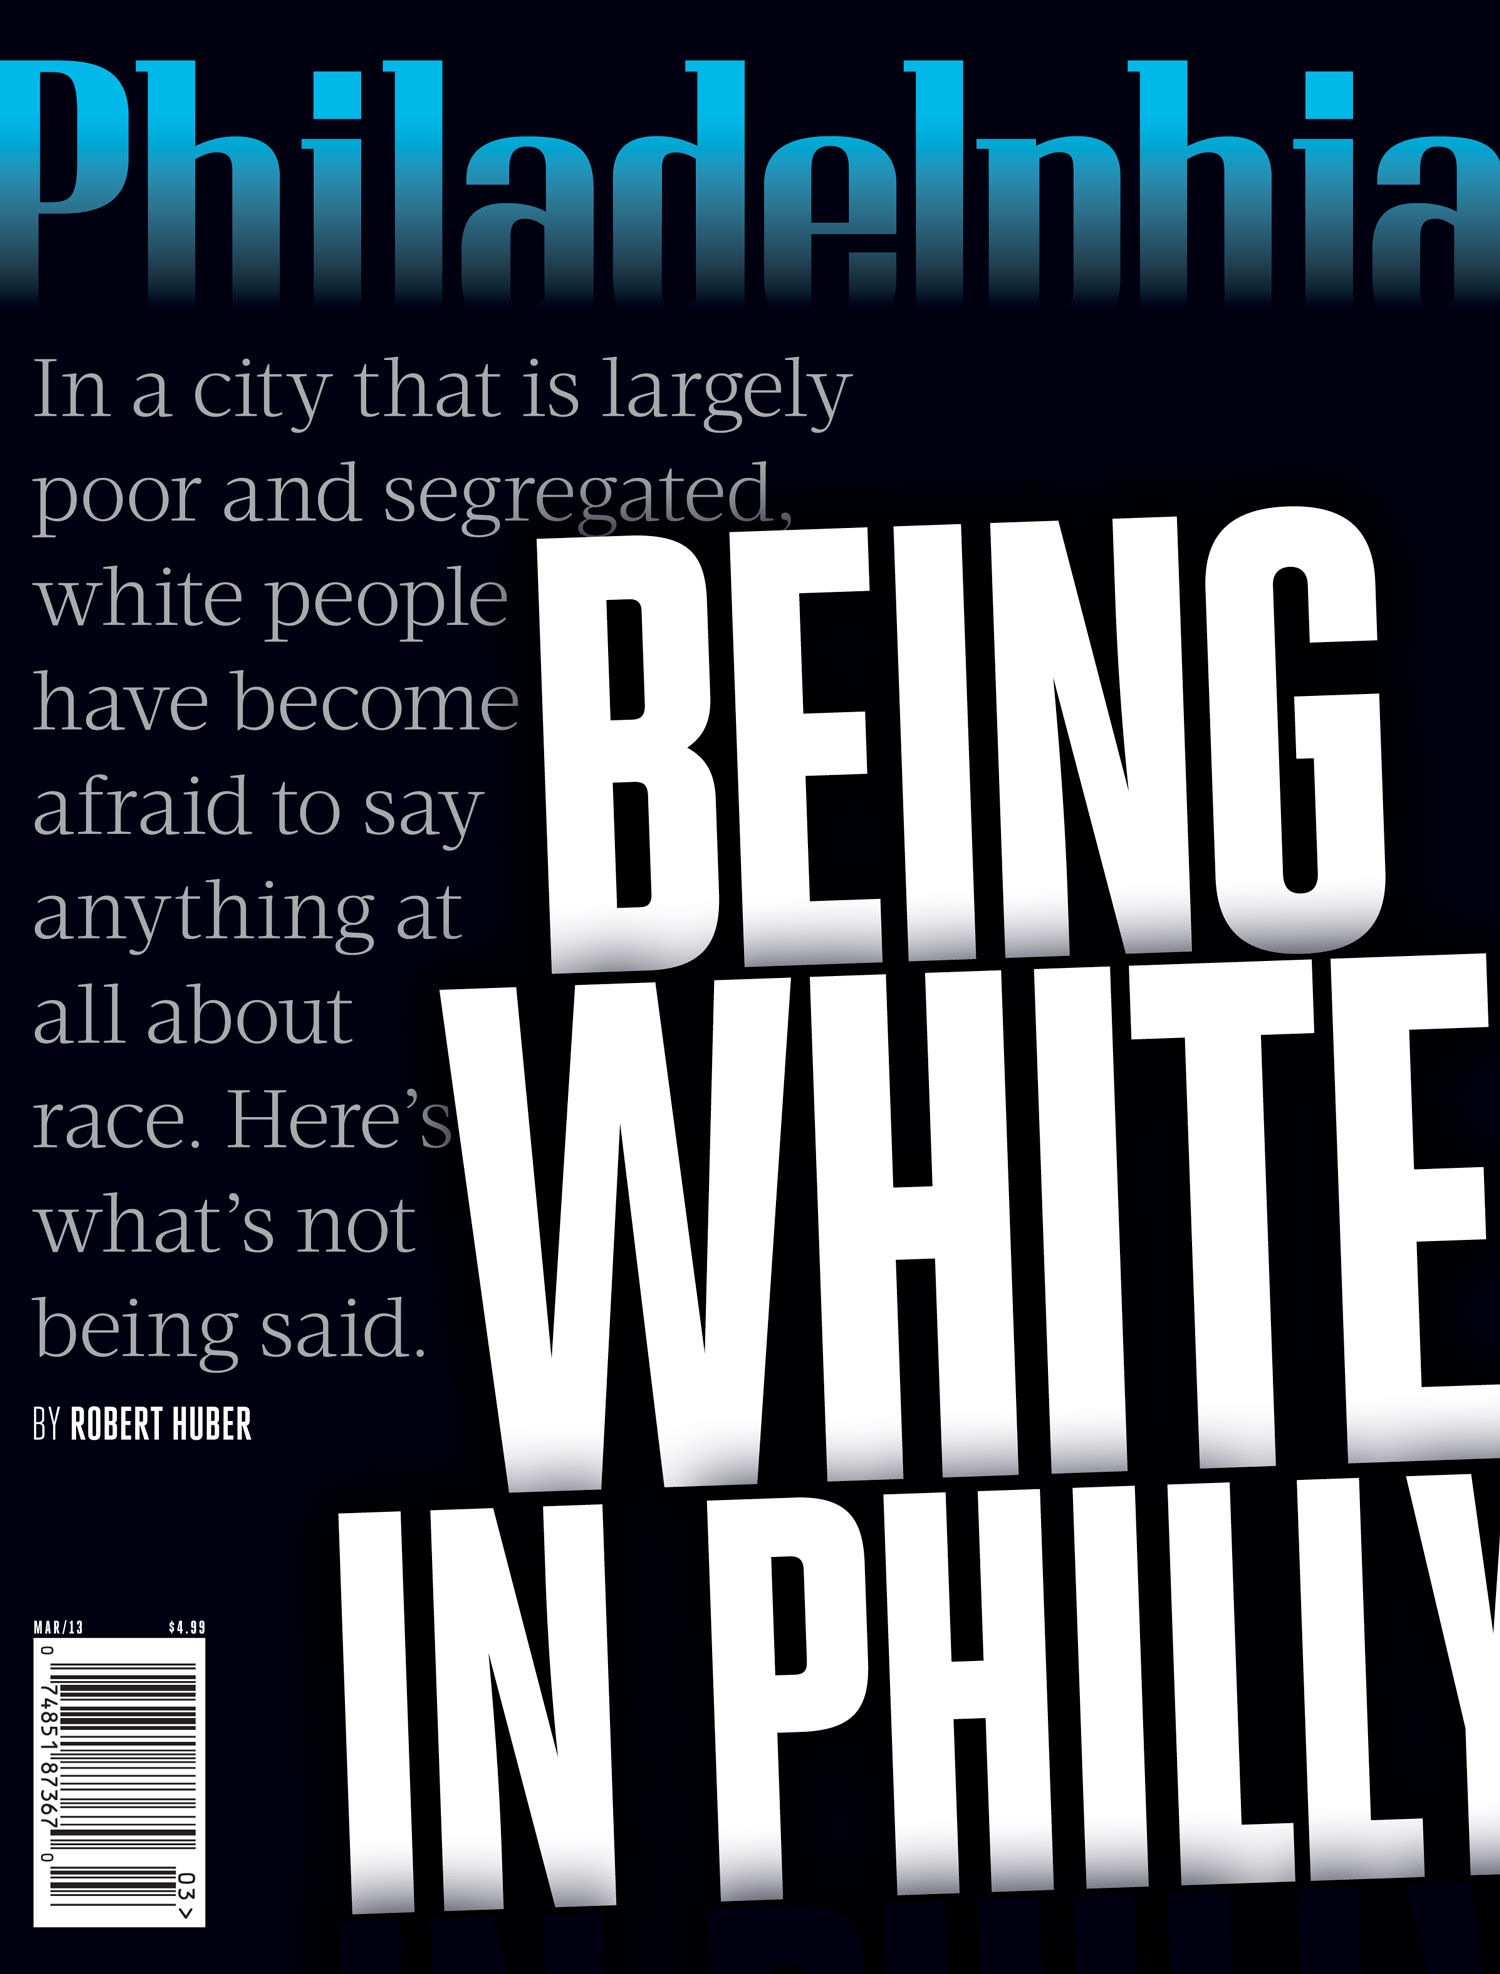 http://www.phillymag.com/articles/wp-content/uploads/2013/03/1303_Cover_Race.jpg